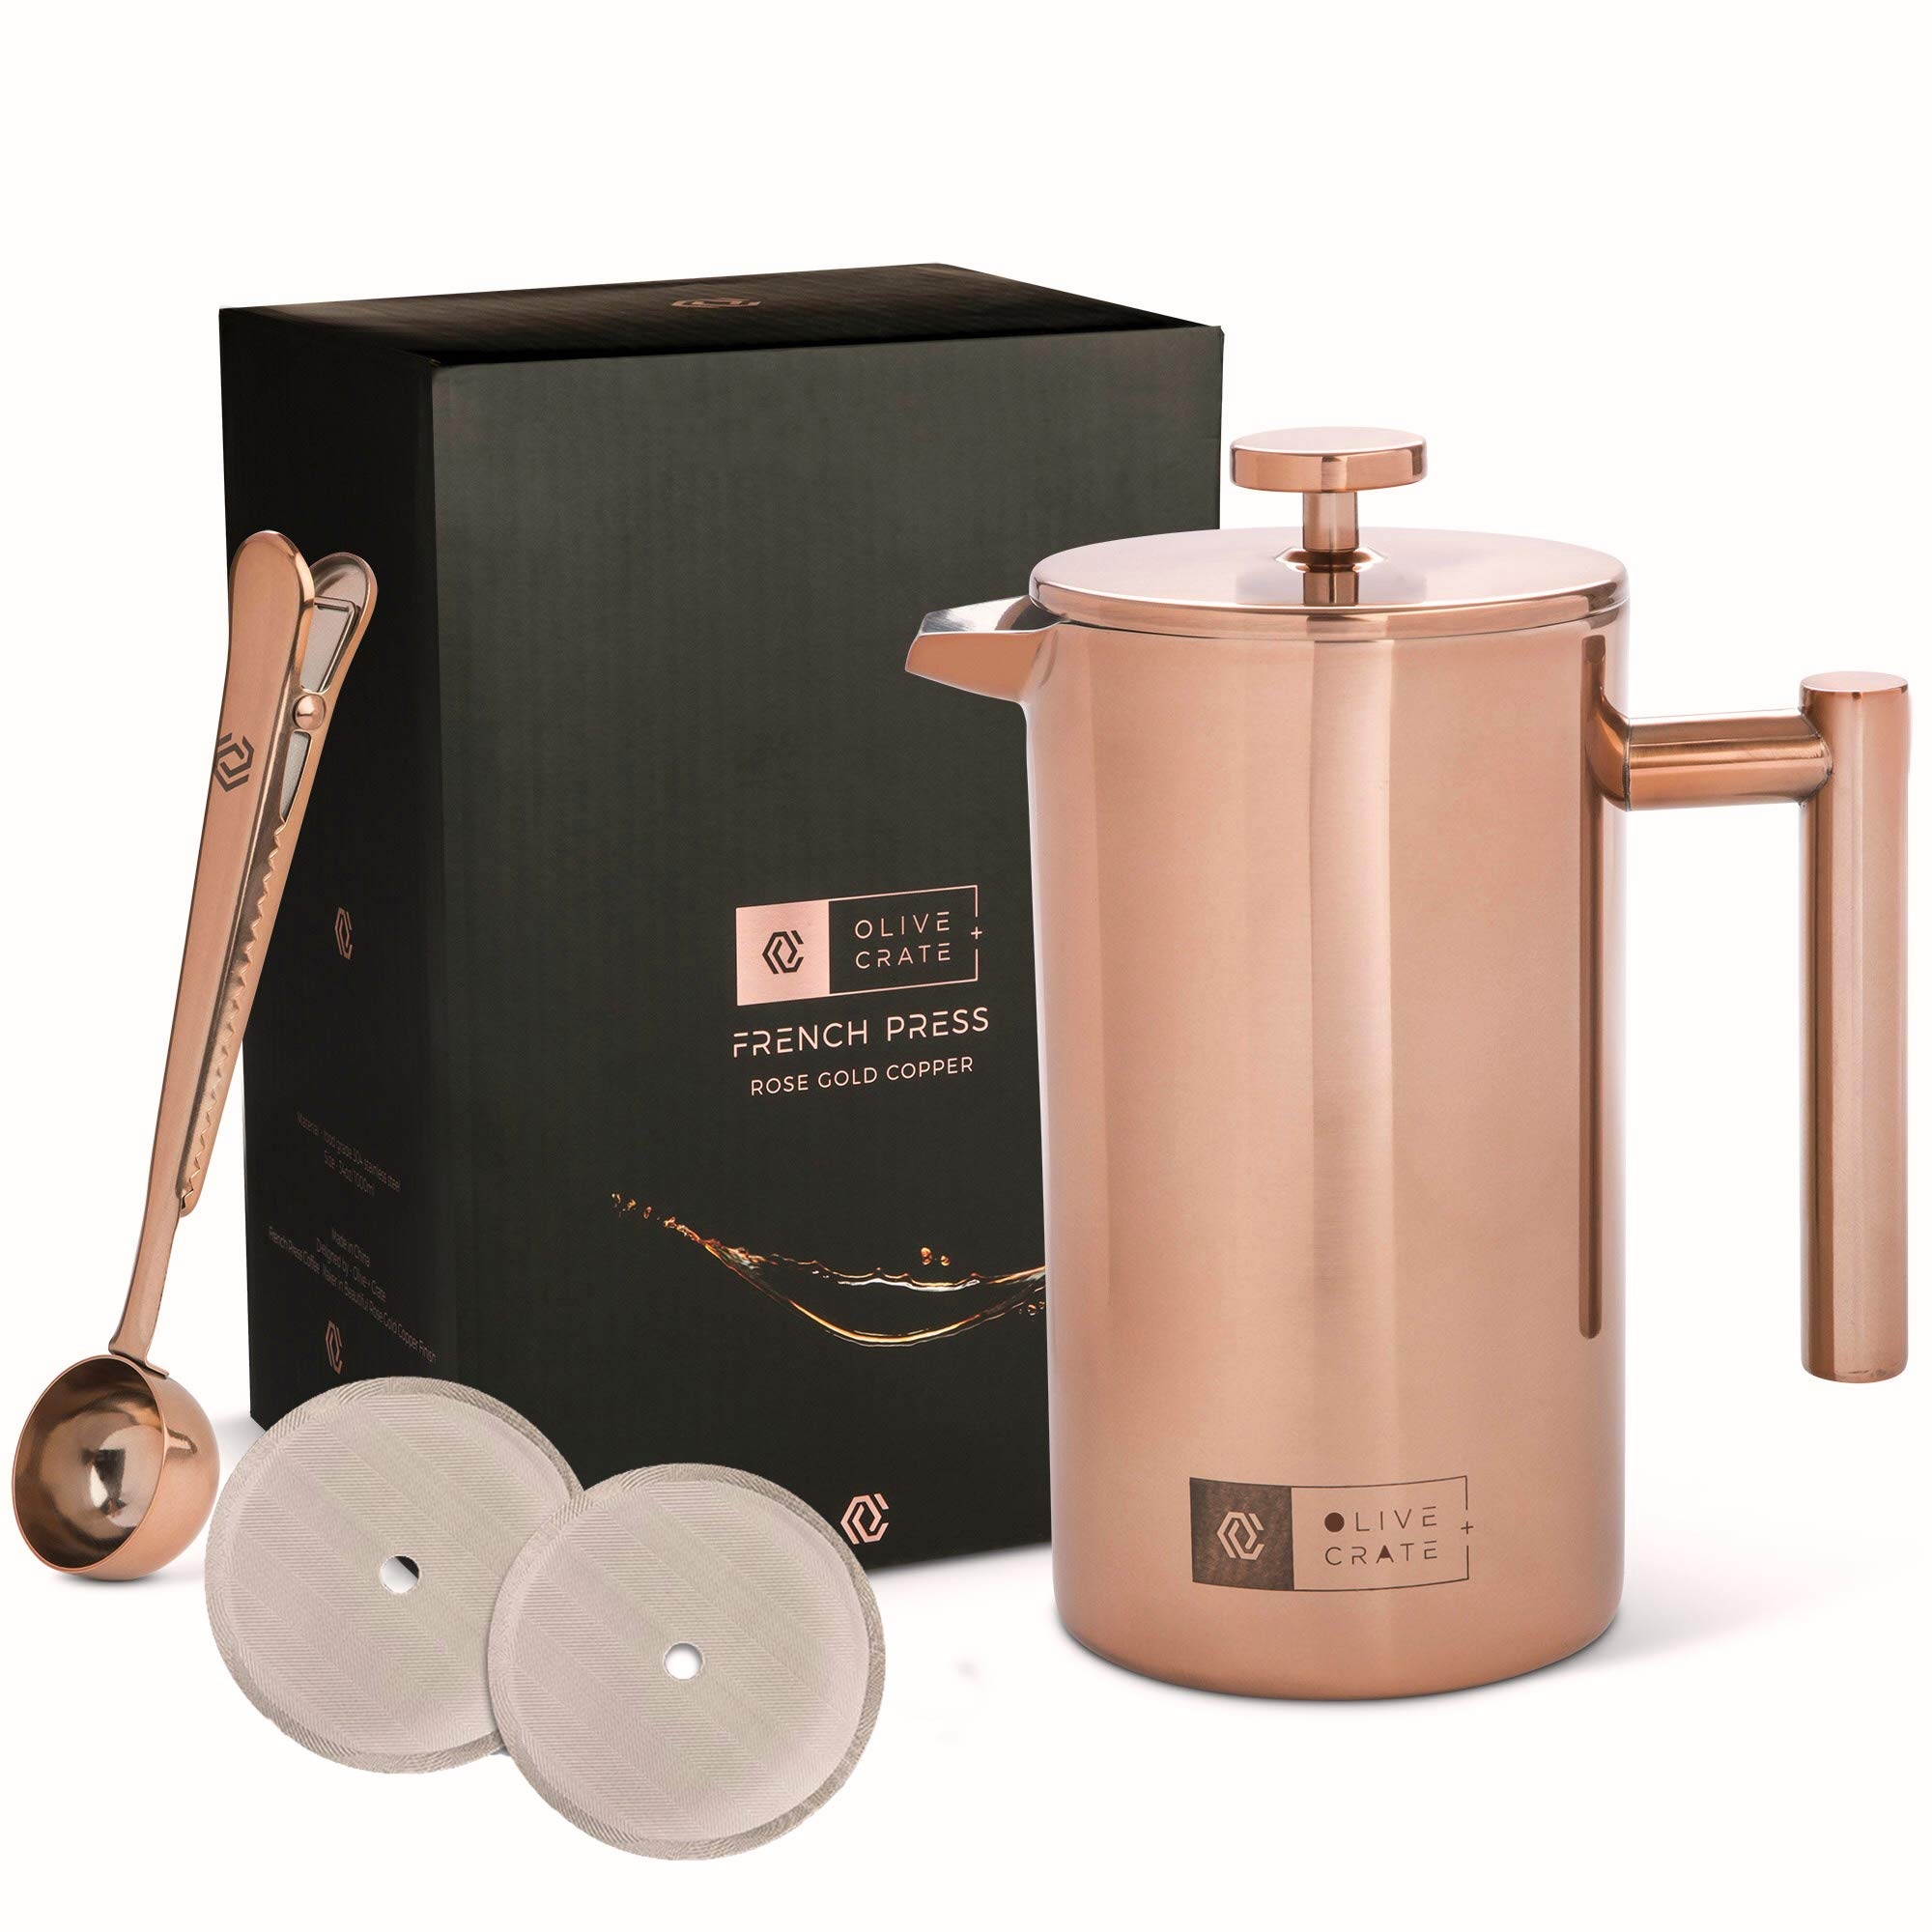 OLIVE + CRATE Copper Stainless Steel French Press Coffee Maker Kit, Measuring Spoon and Clip - Large Portable Coffee Maker - Insulated French Press, Great for Travel and Outdoors, 34oz by Olive + Crate